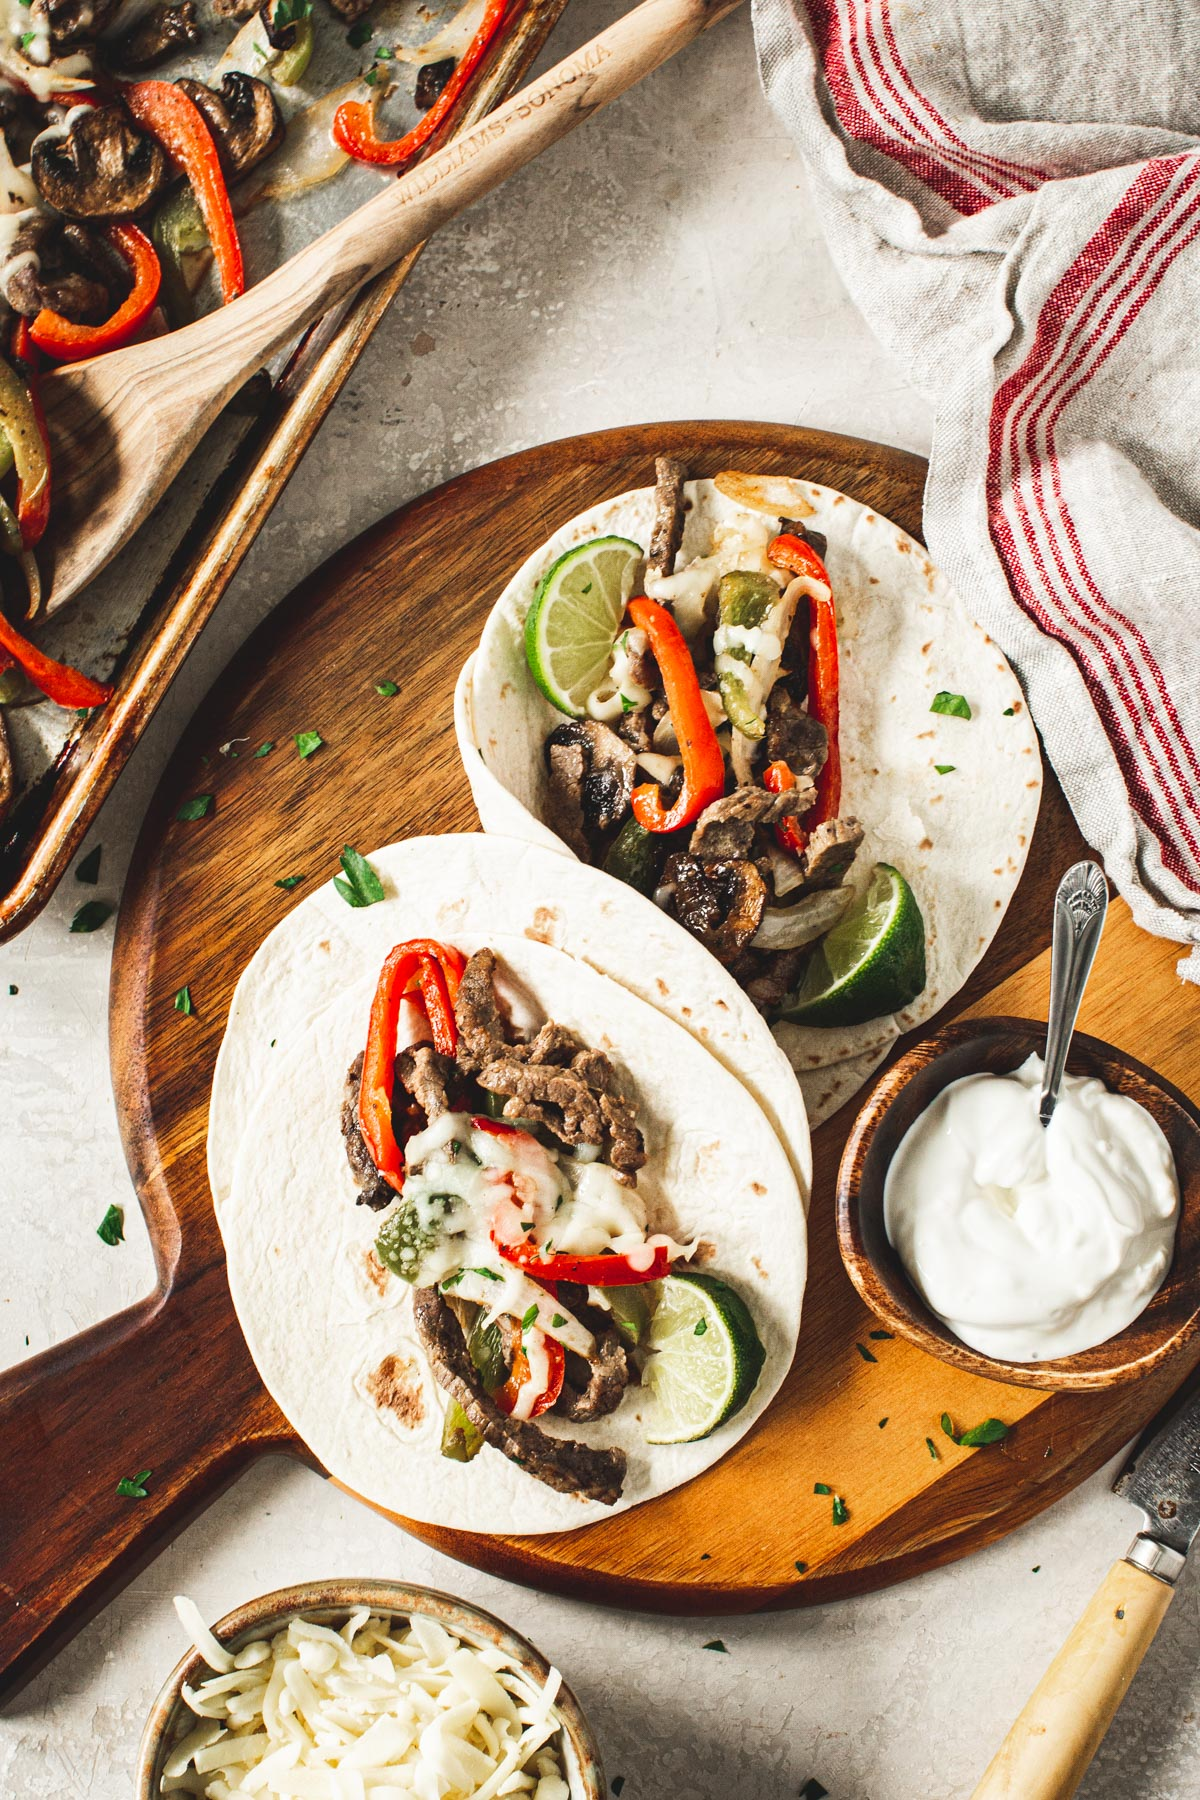 Homemade cheesesteak fajitas on a round wooden board with sour cream in a bowl beside it.